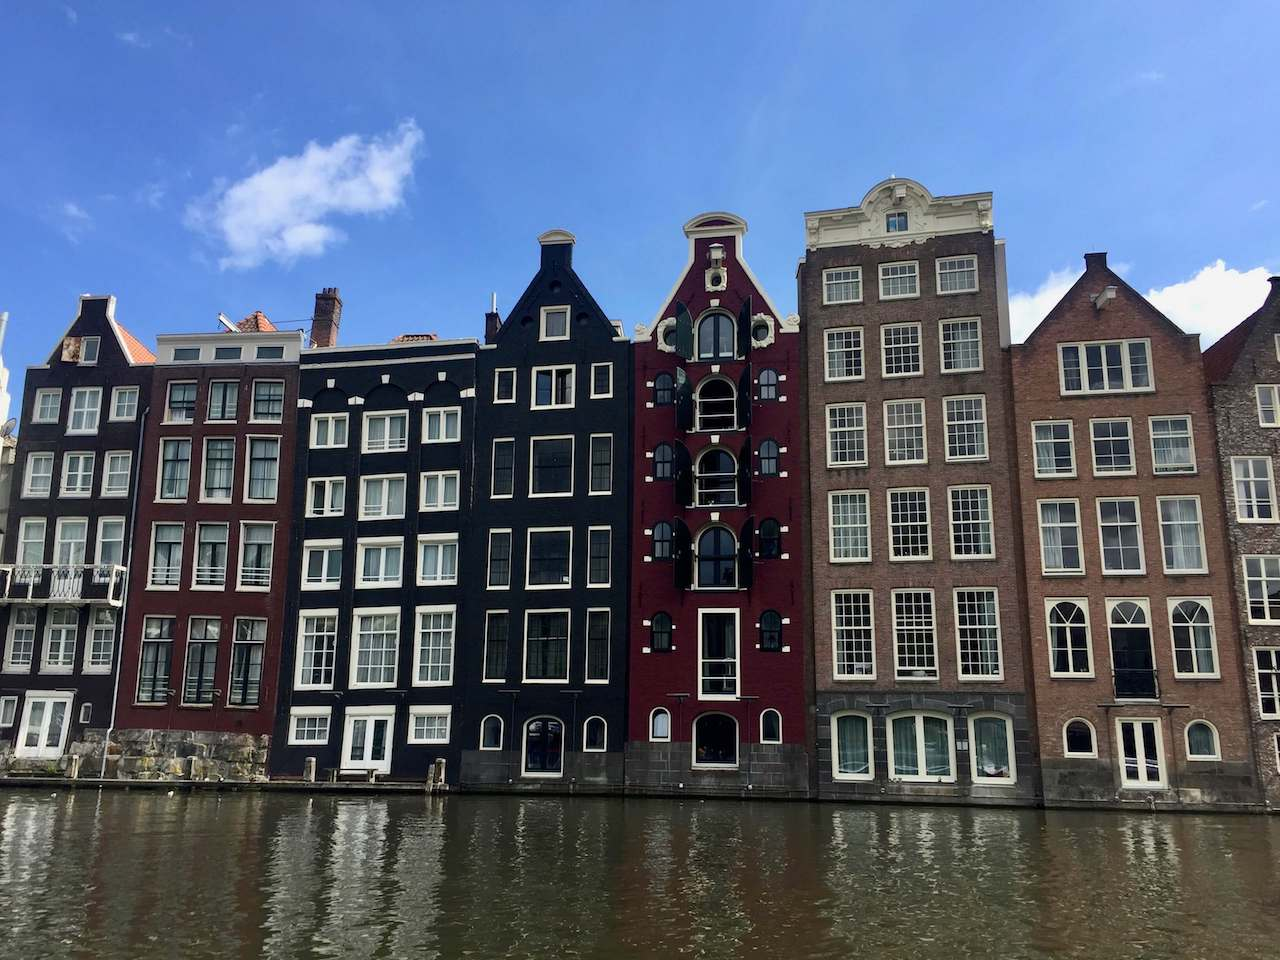 The Netherlands, Amsterdam - Dutch houses